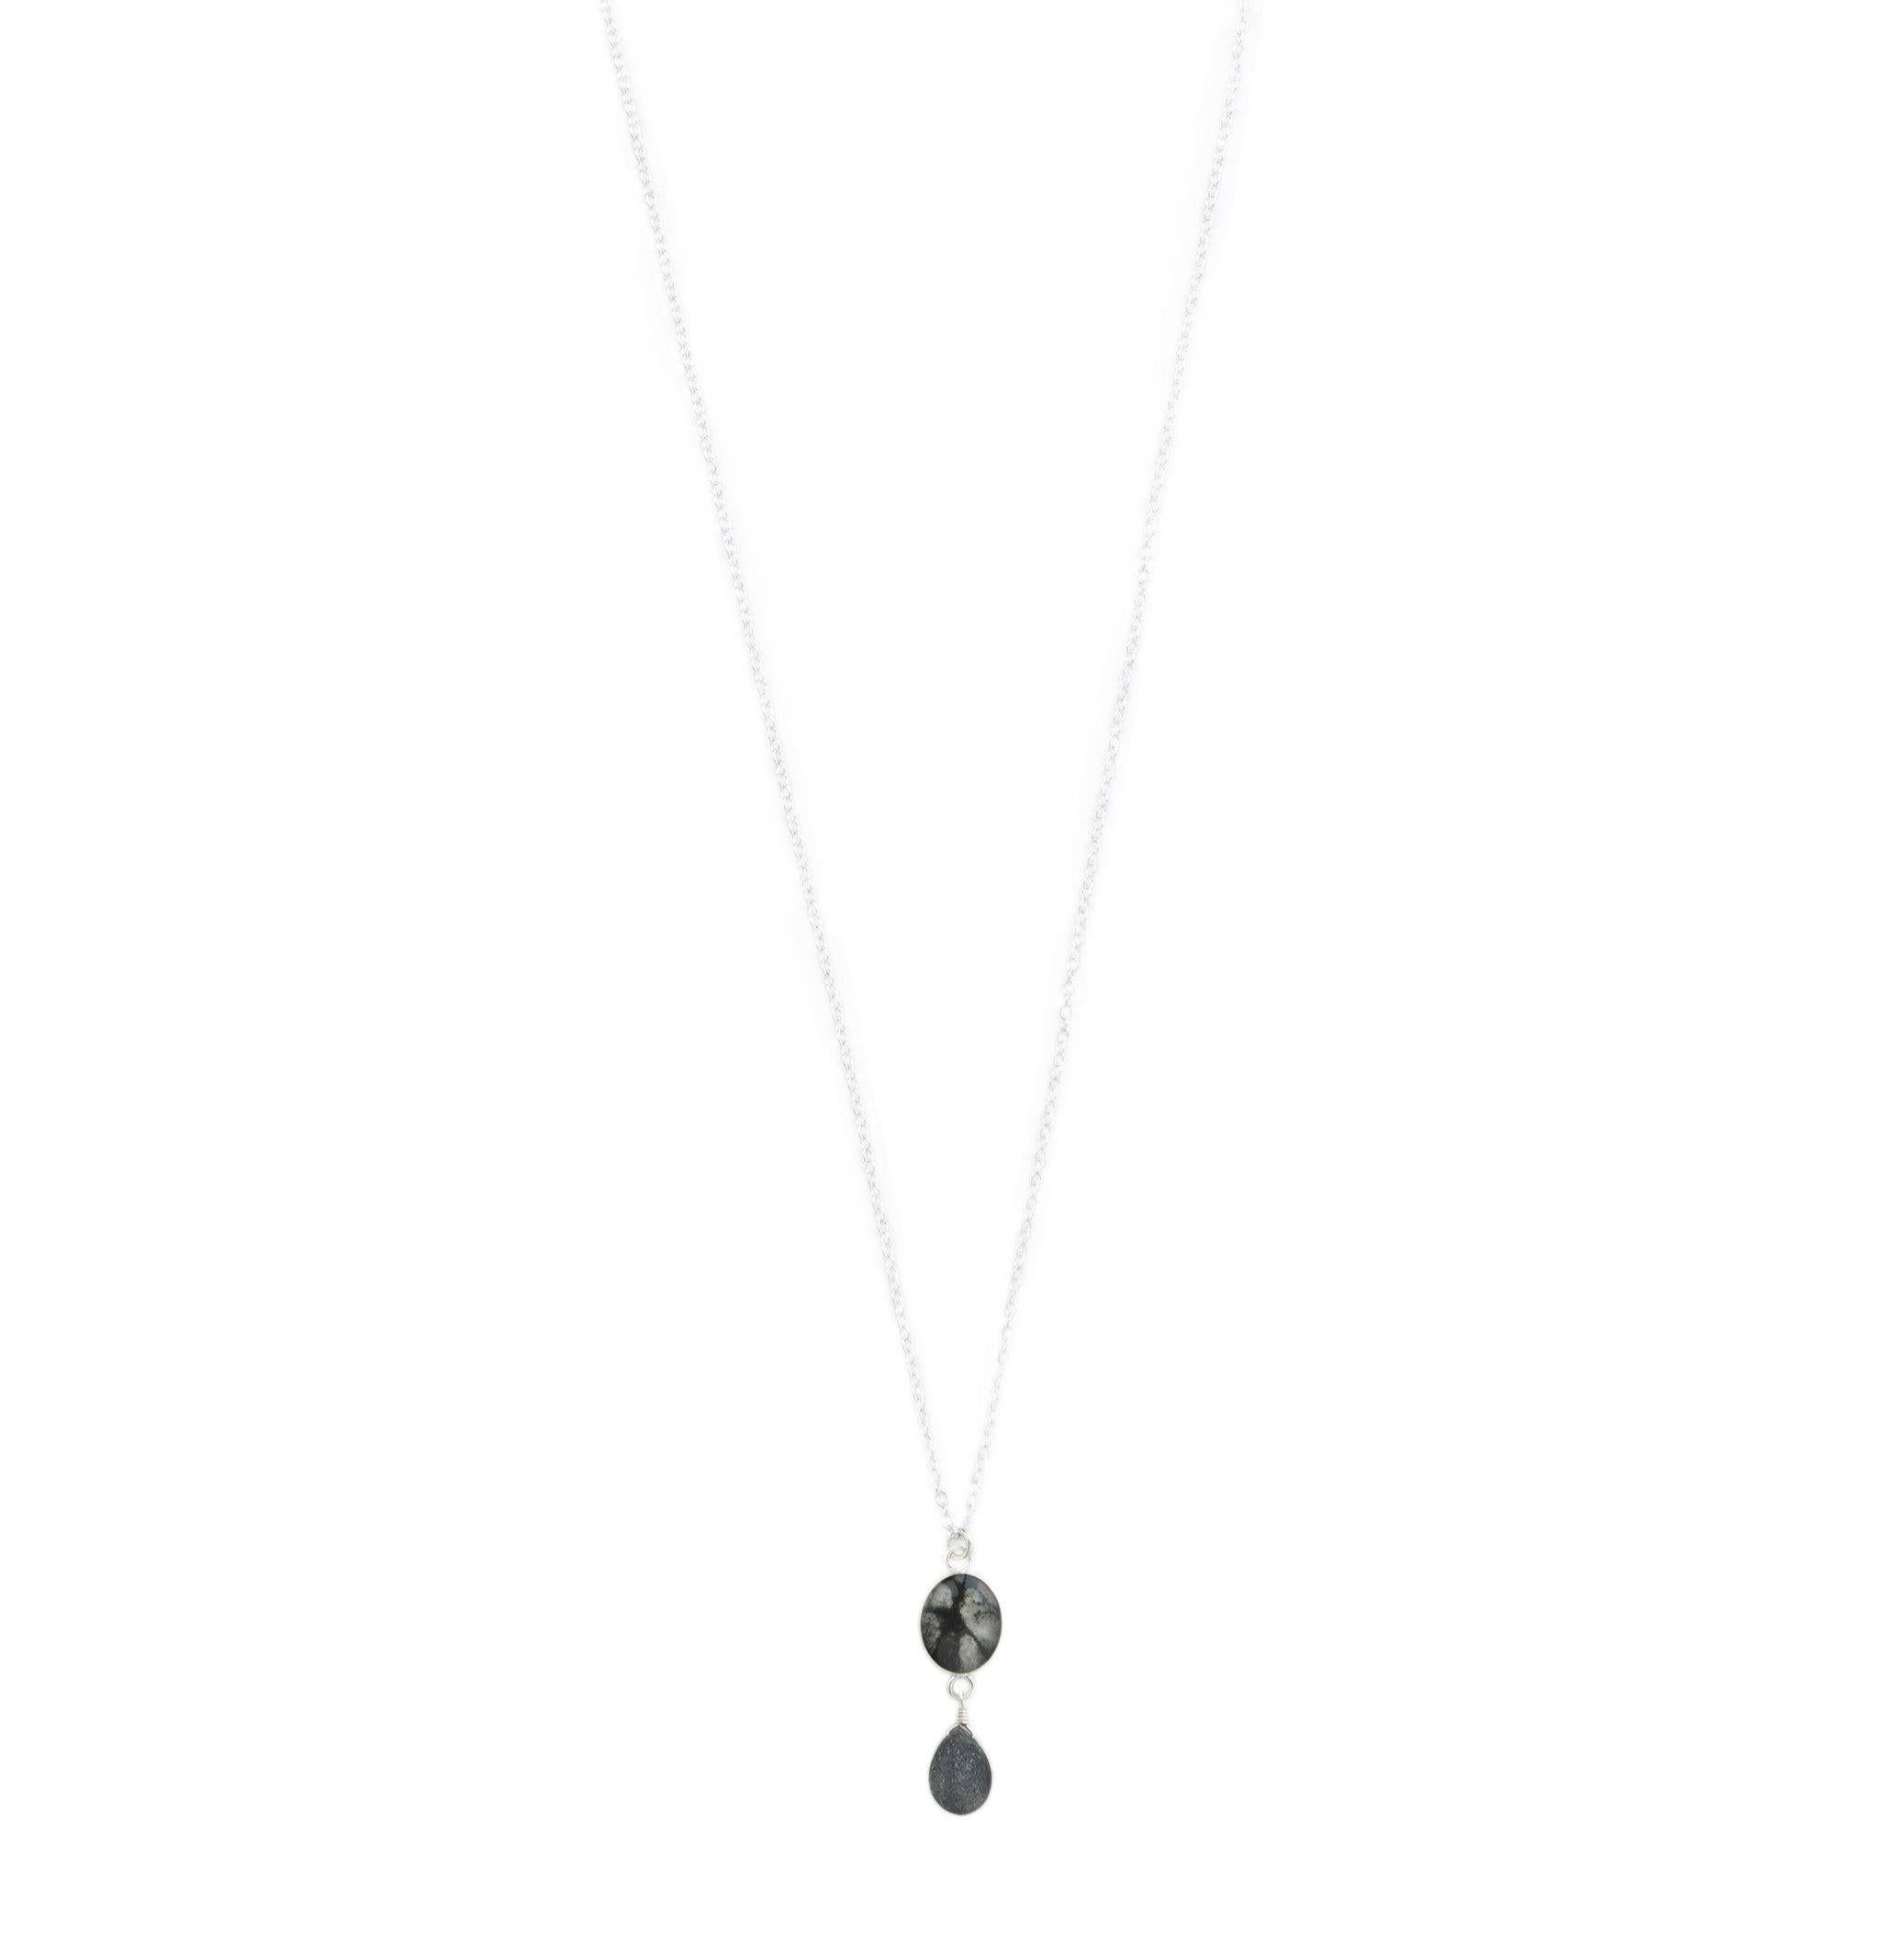 34 inch long chain necklace with teardrop stone accent to match oval shaped pendant with cell images of disease in resin